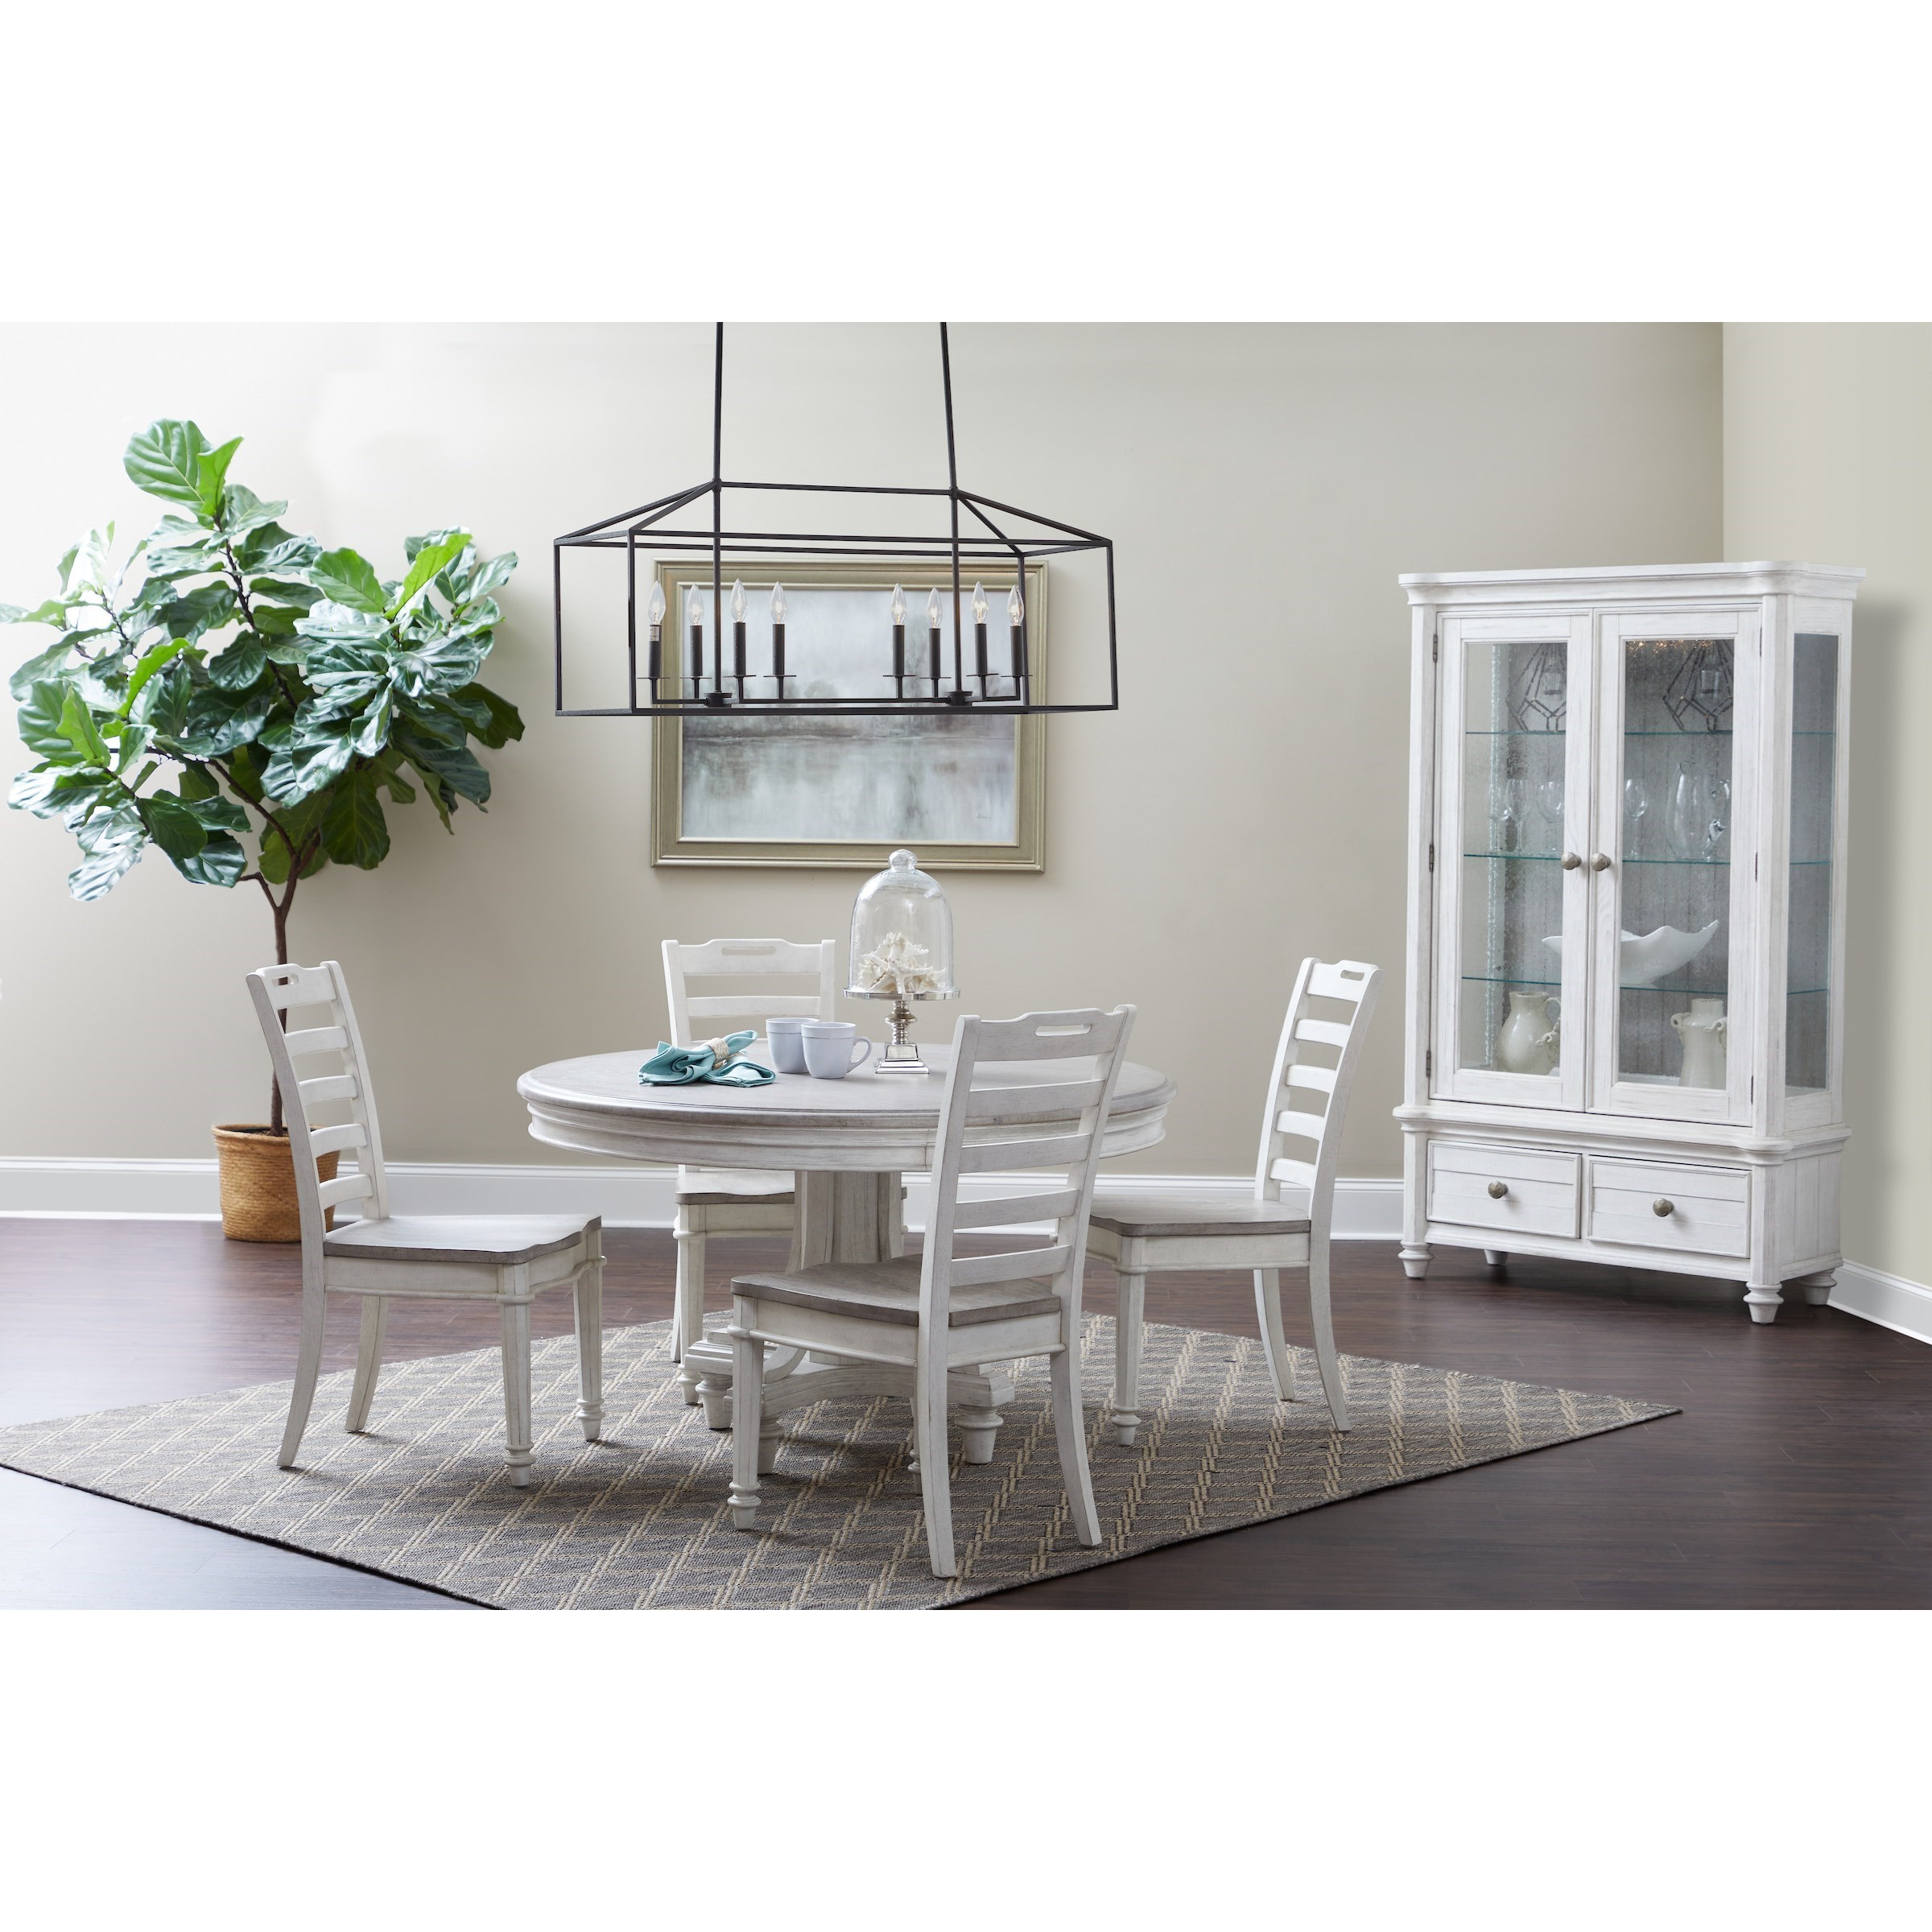 Maribelle Casual Dining Room Group by Klaussner International at Northeast Factory Direct